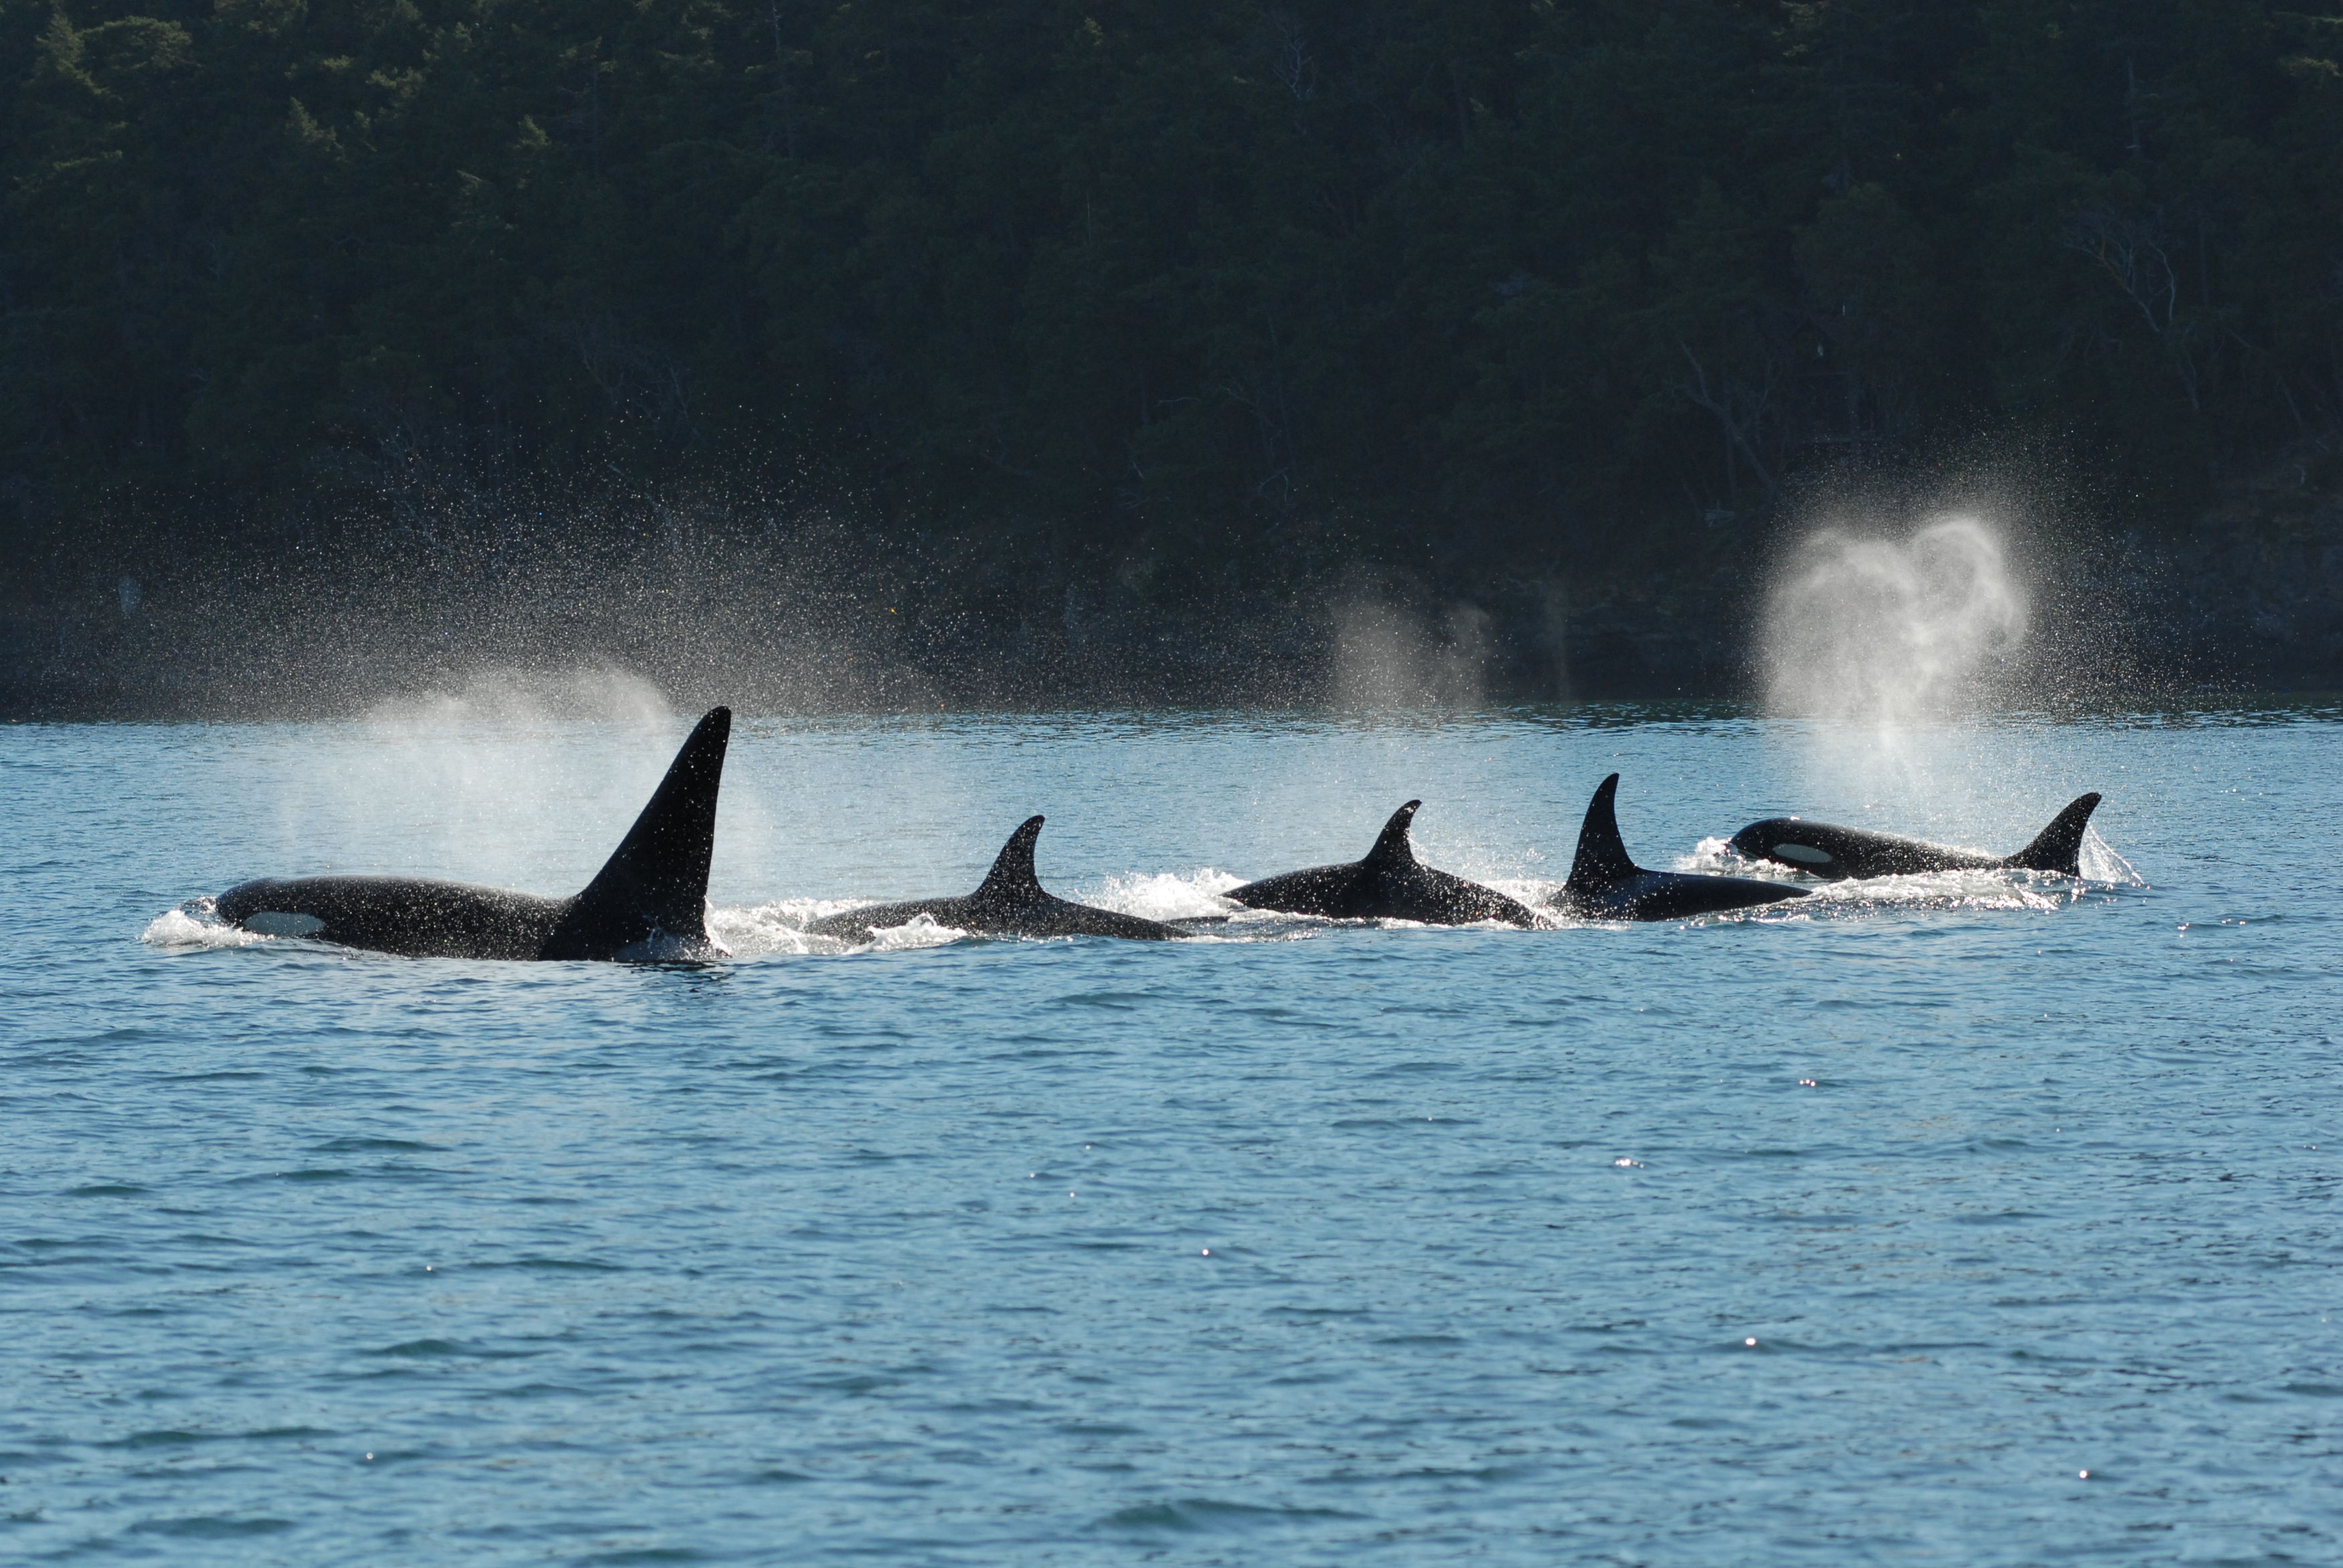 Talking killer whale verifies orcas' ability to mimic human sounds